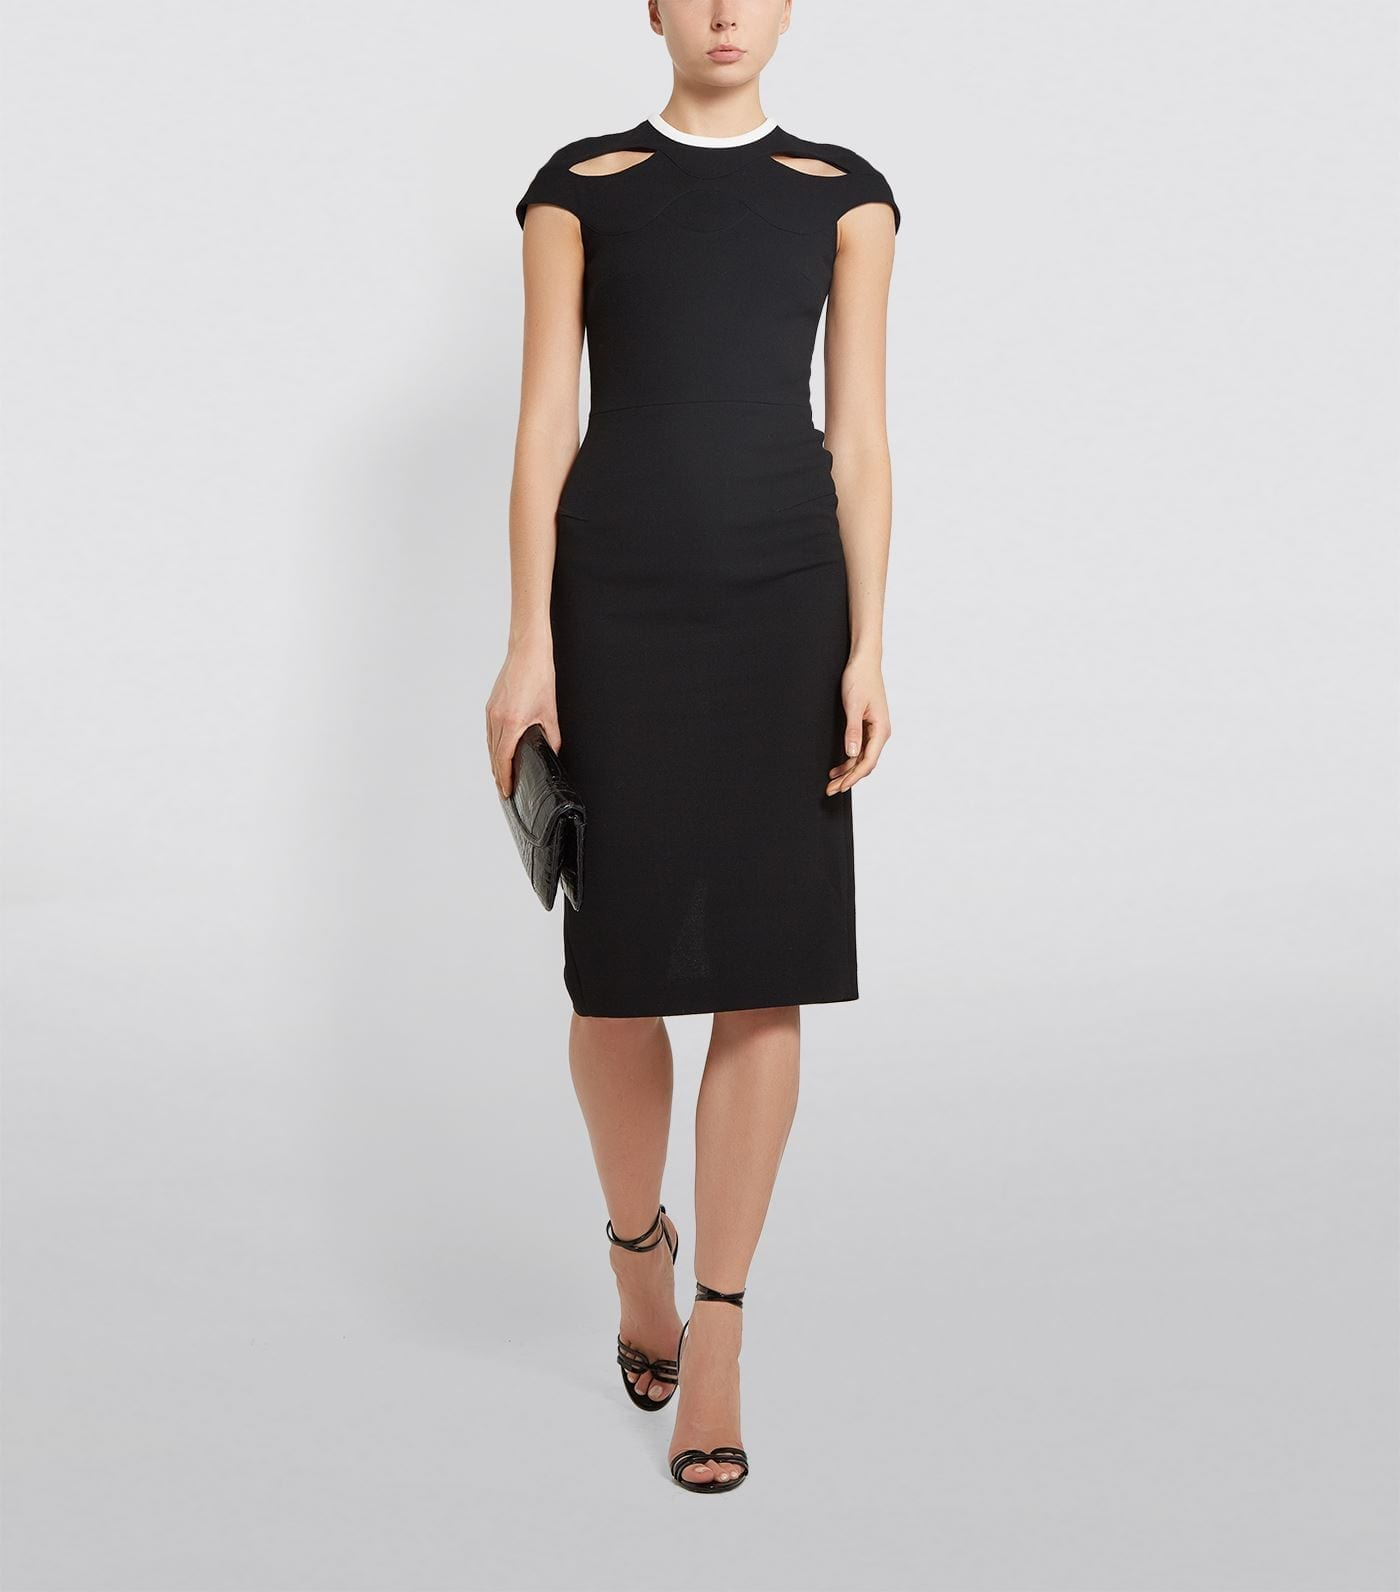 ROLAND MOURET Cut-Out Talland Pencil Dress